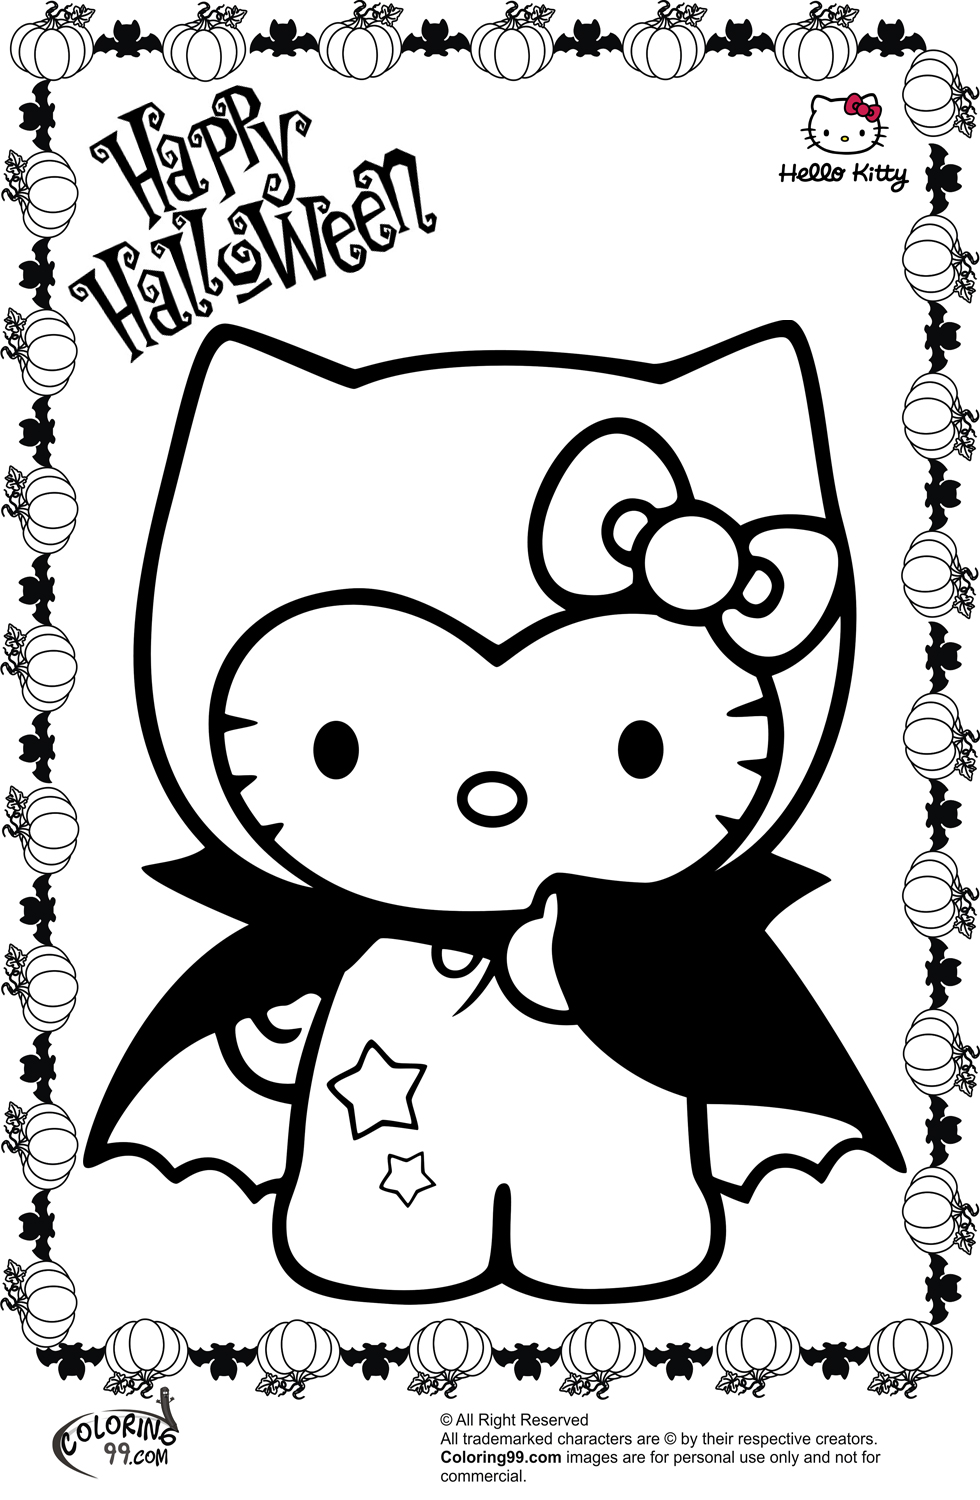 halloween color pages halloween coloring pages download free coloring sheets halloween color pages